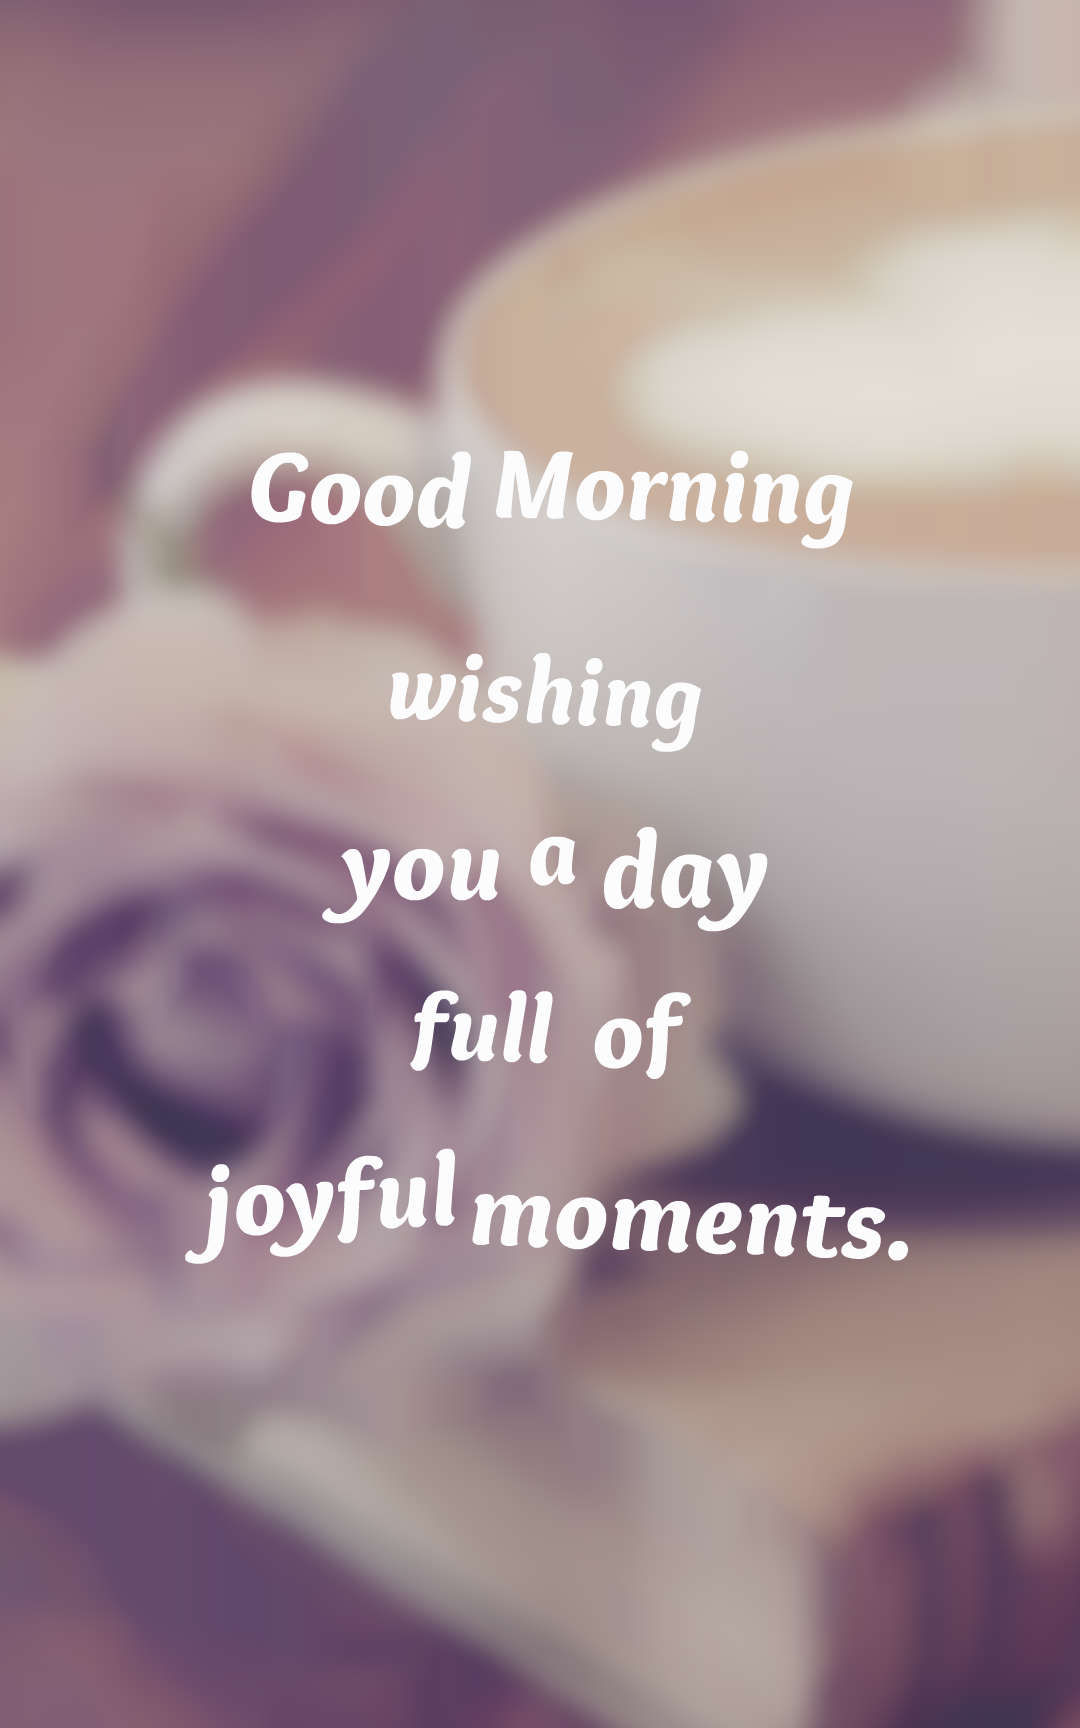 Joyful Moments For A Good Morning Pictures Photos And